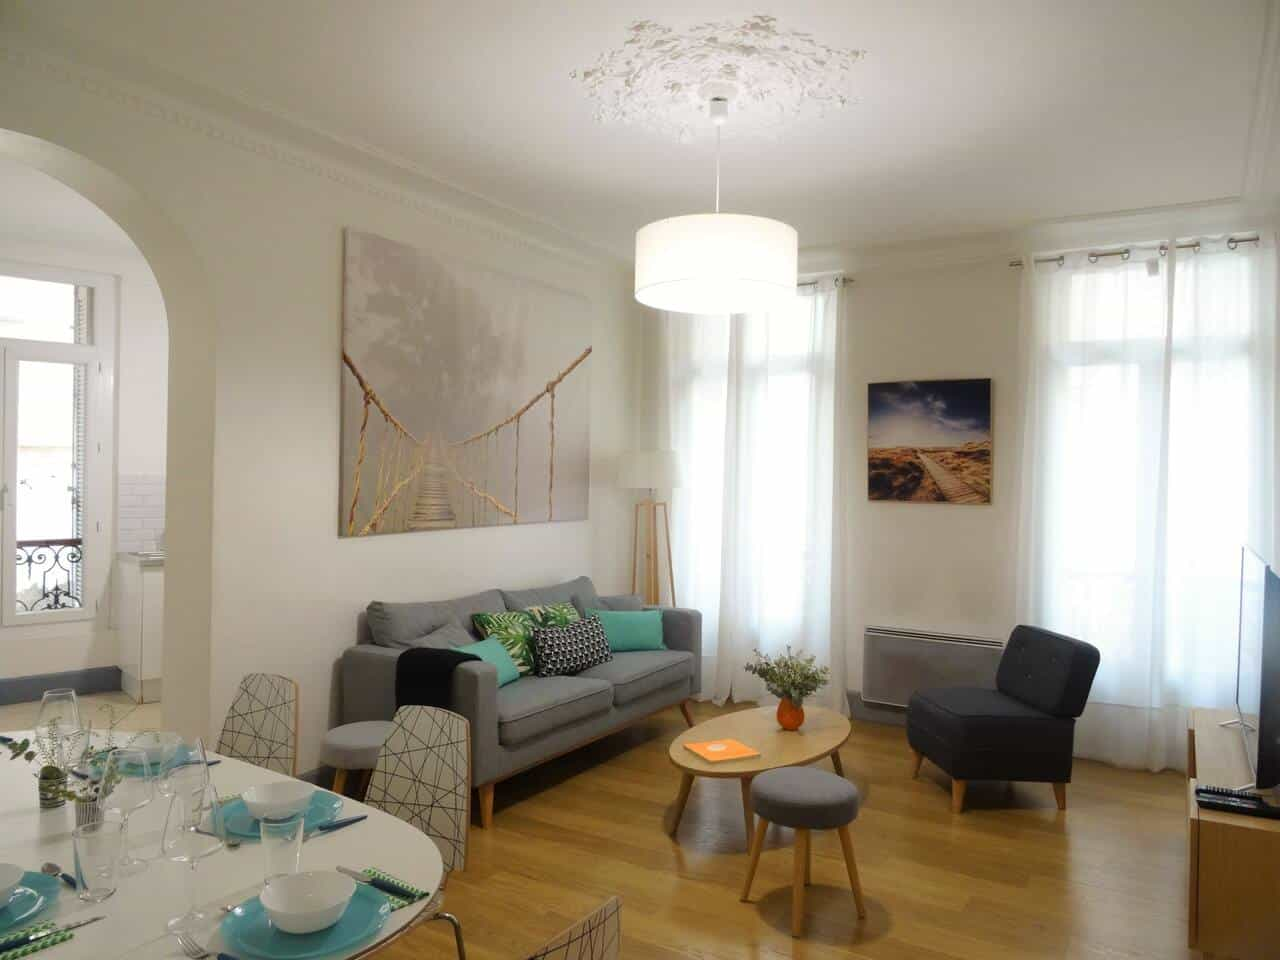 Image of Airbnb rental in Marseille, France